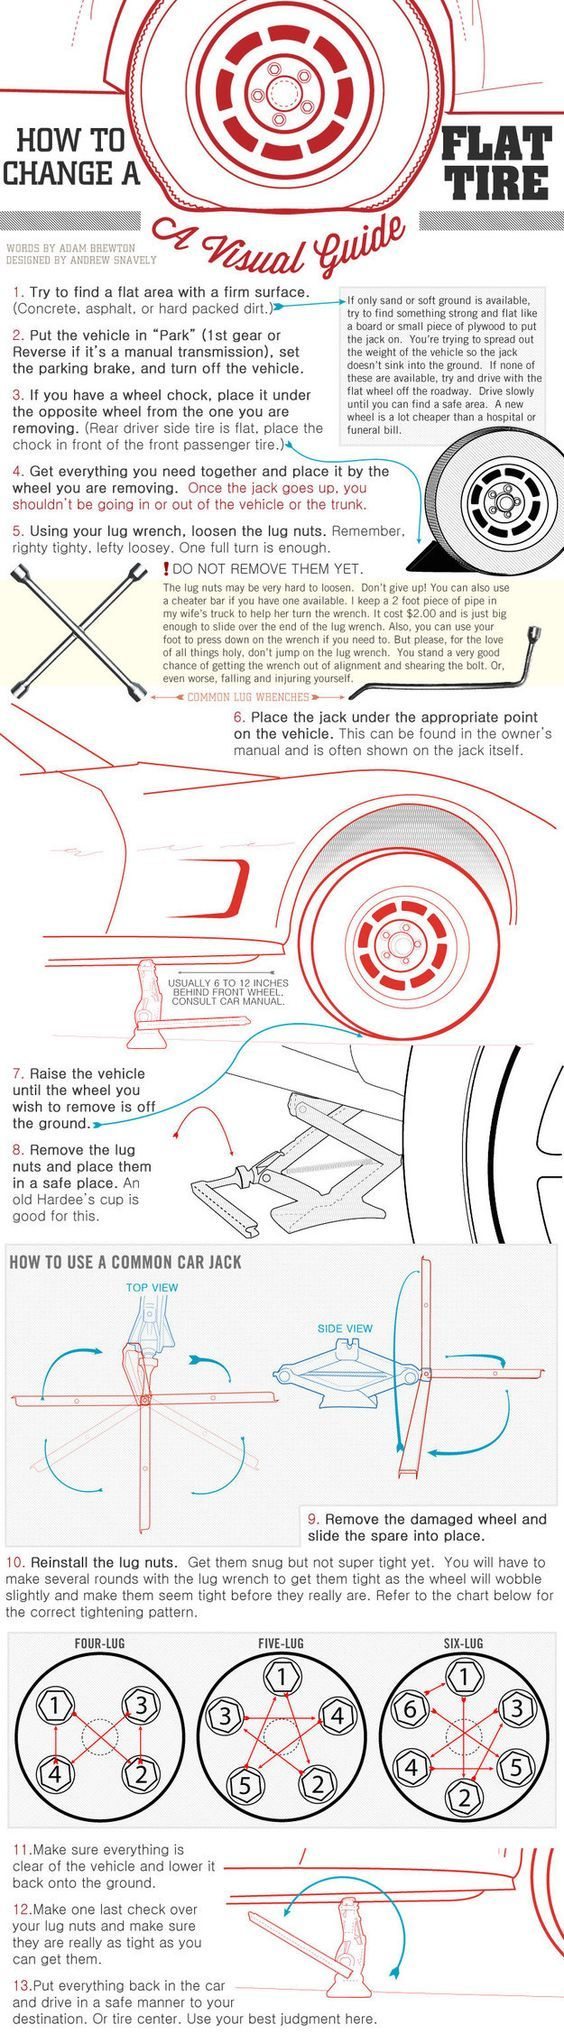 218 best vehicle tips images on pinterest households car stuff how to change a flat tire visual guide yes a properly running car is a fabulous accessory fandeluxe Images